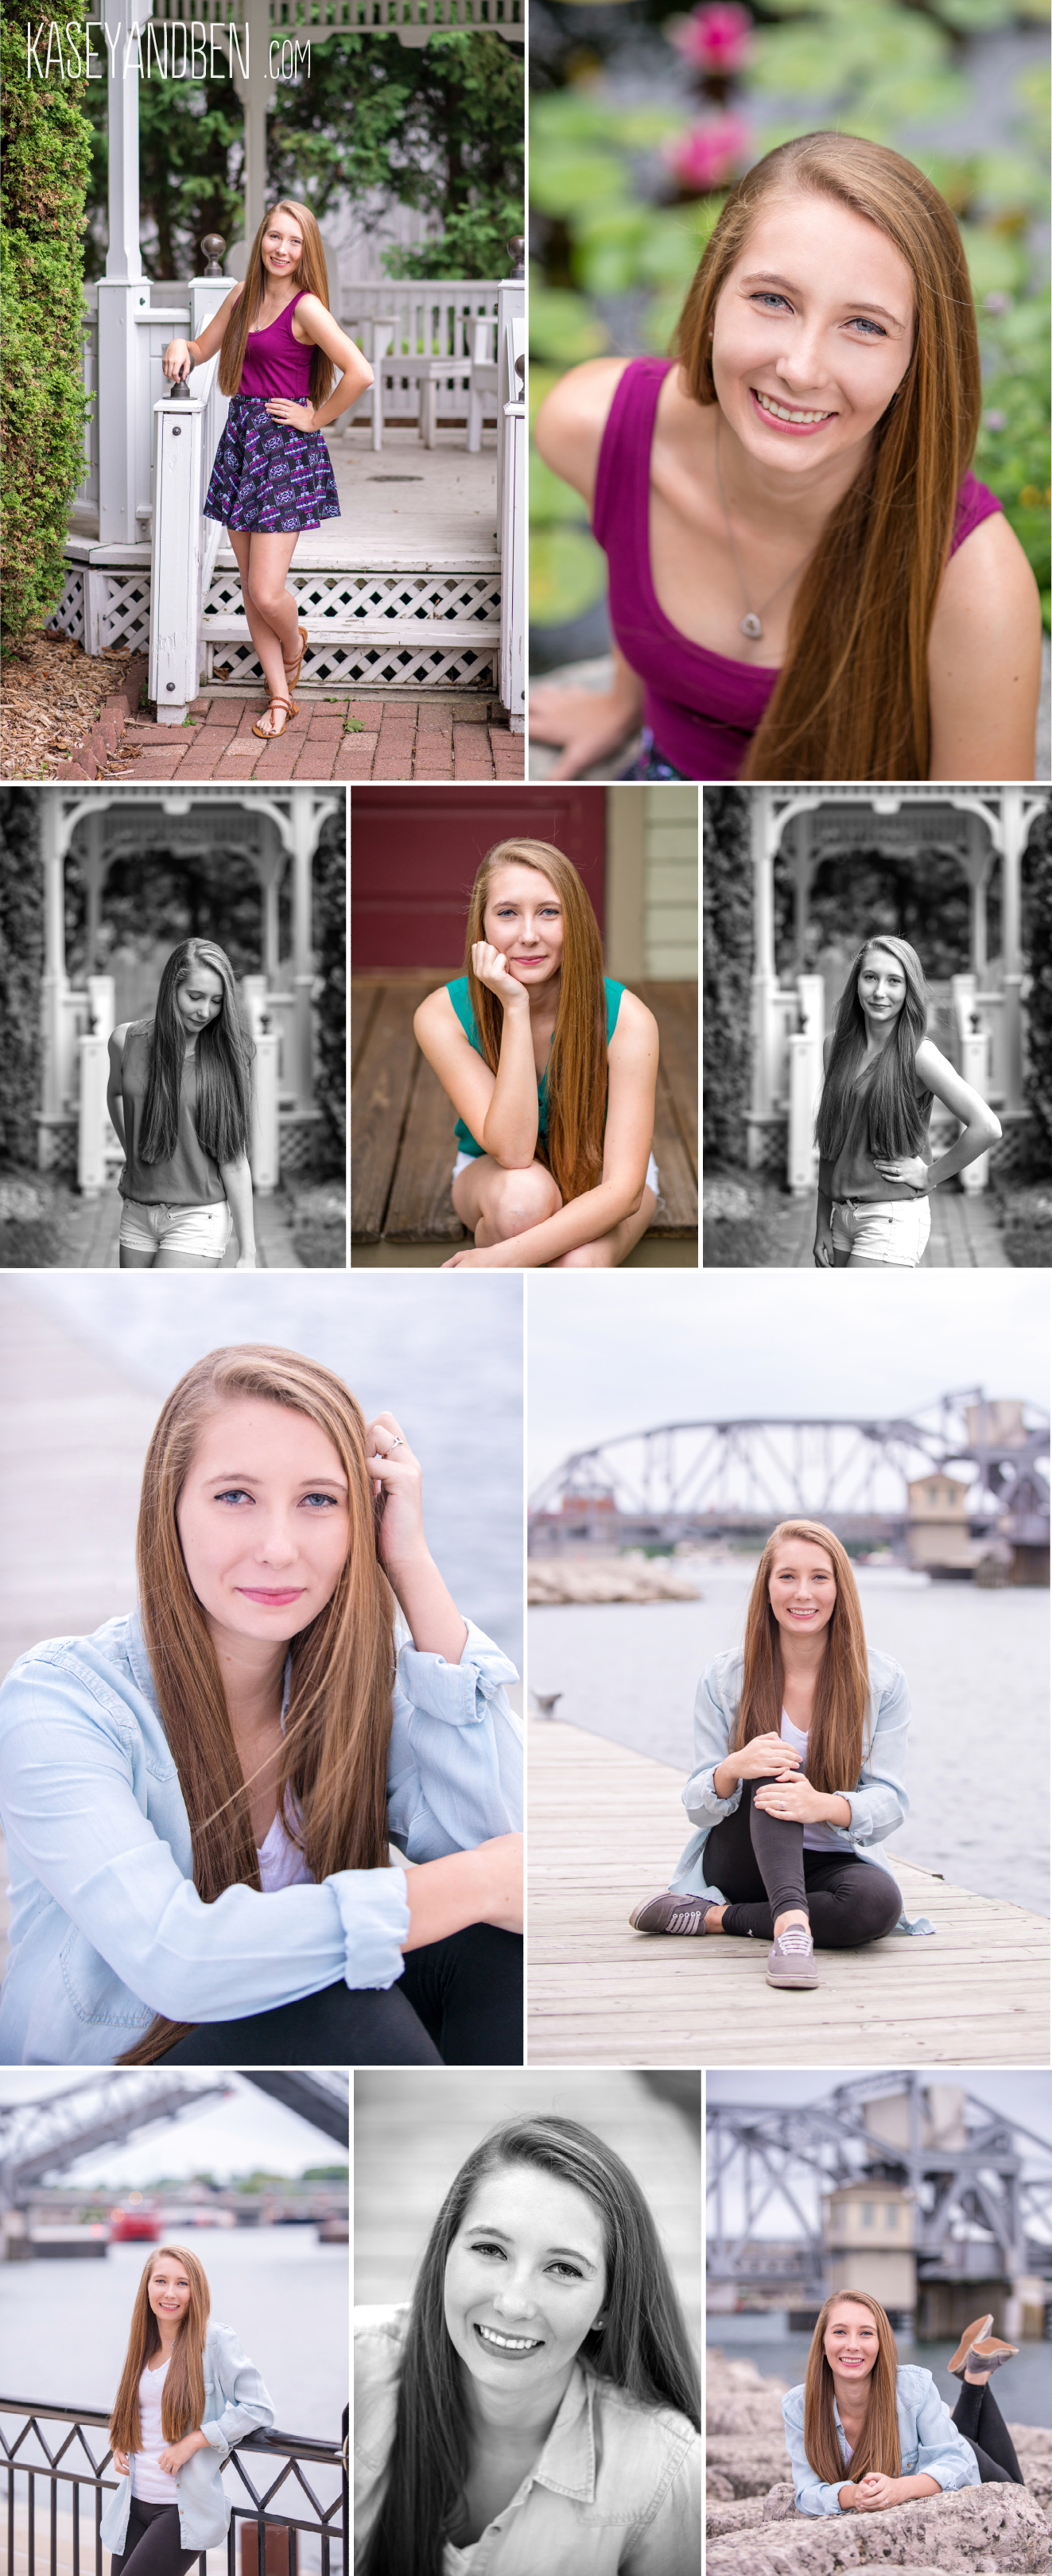 Door-County-Senior-Photos-Stone-Harbor-Photographer-Senior-Portraits-White-Lace-Inn-Steel-Bridge-Sturgeon-Bay